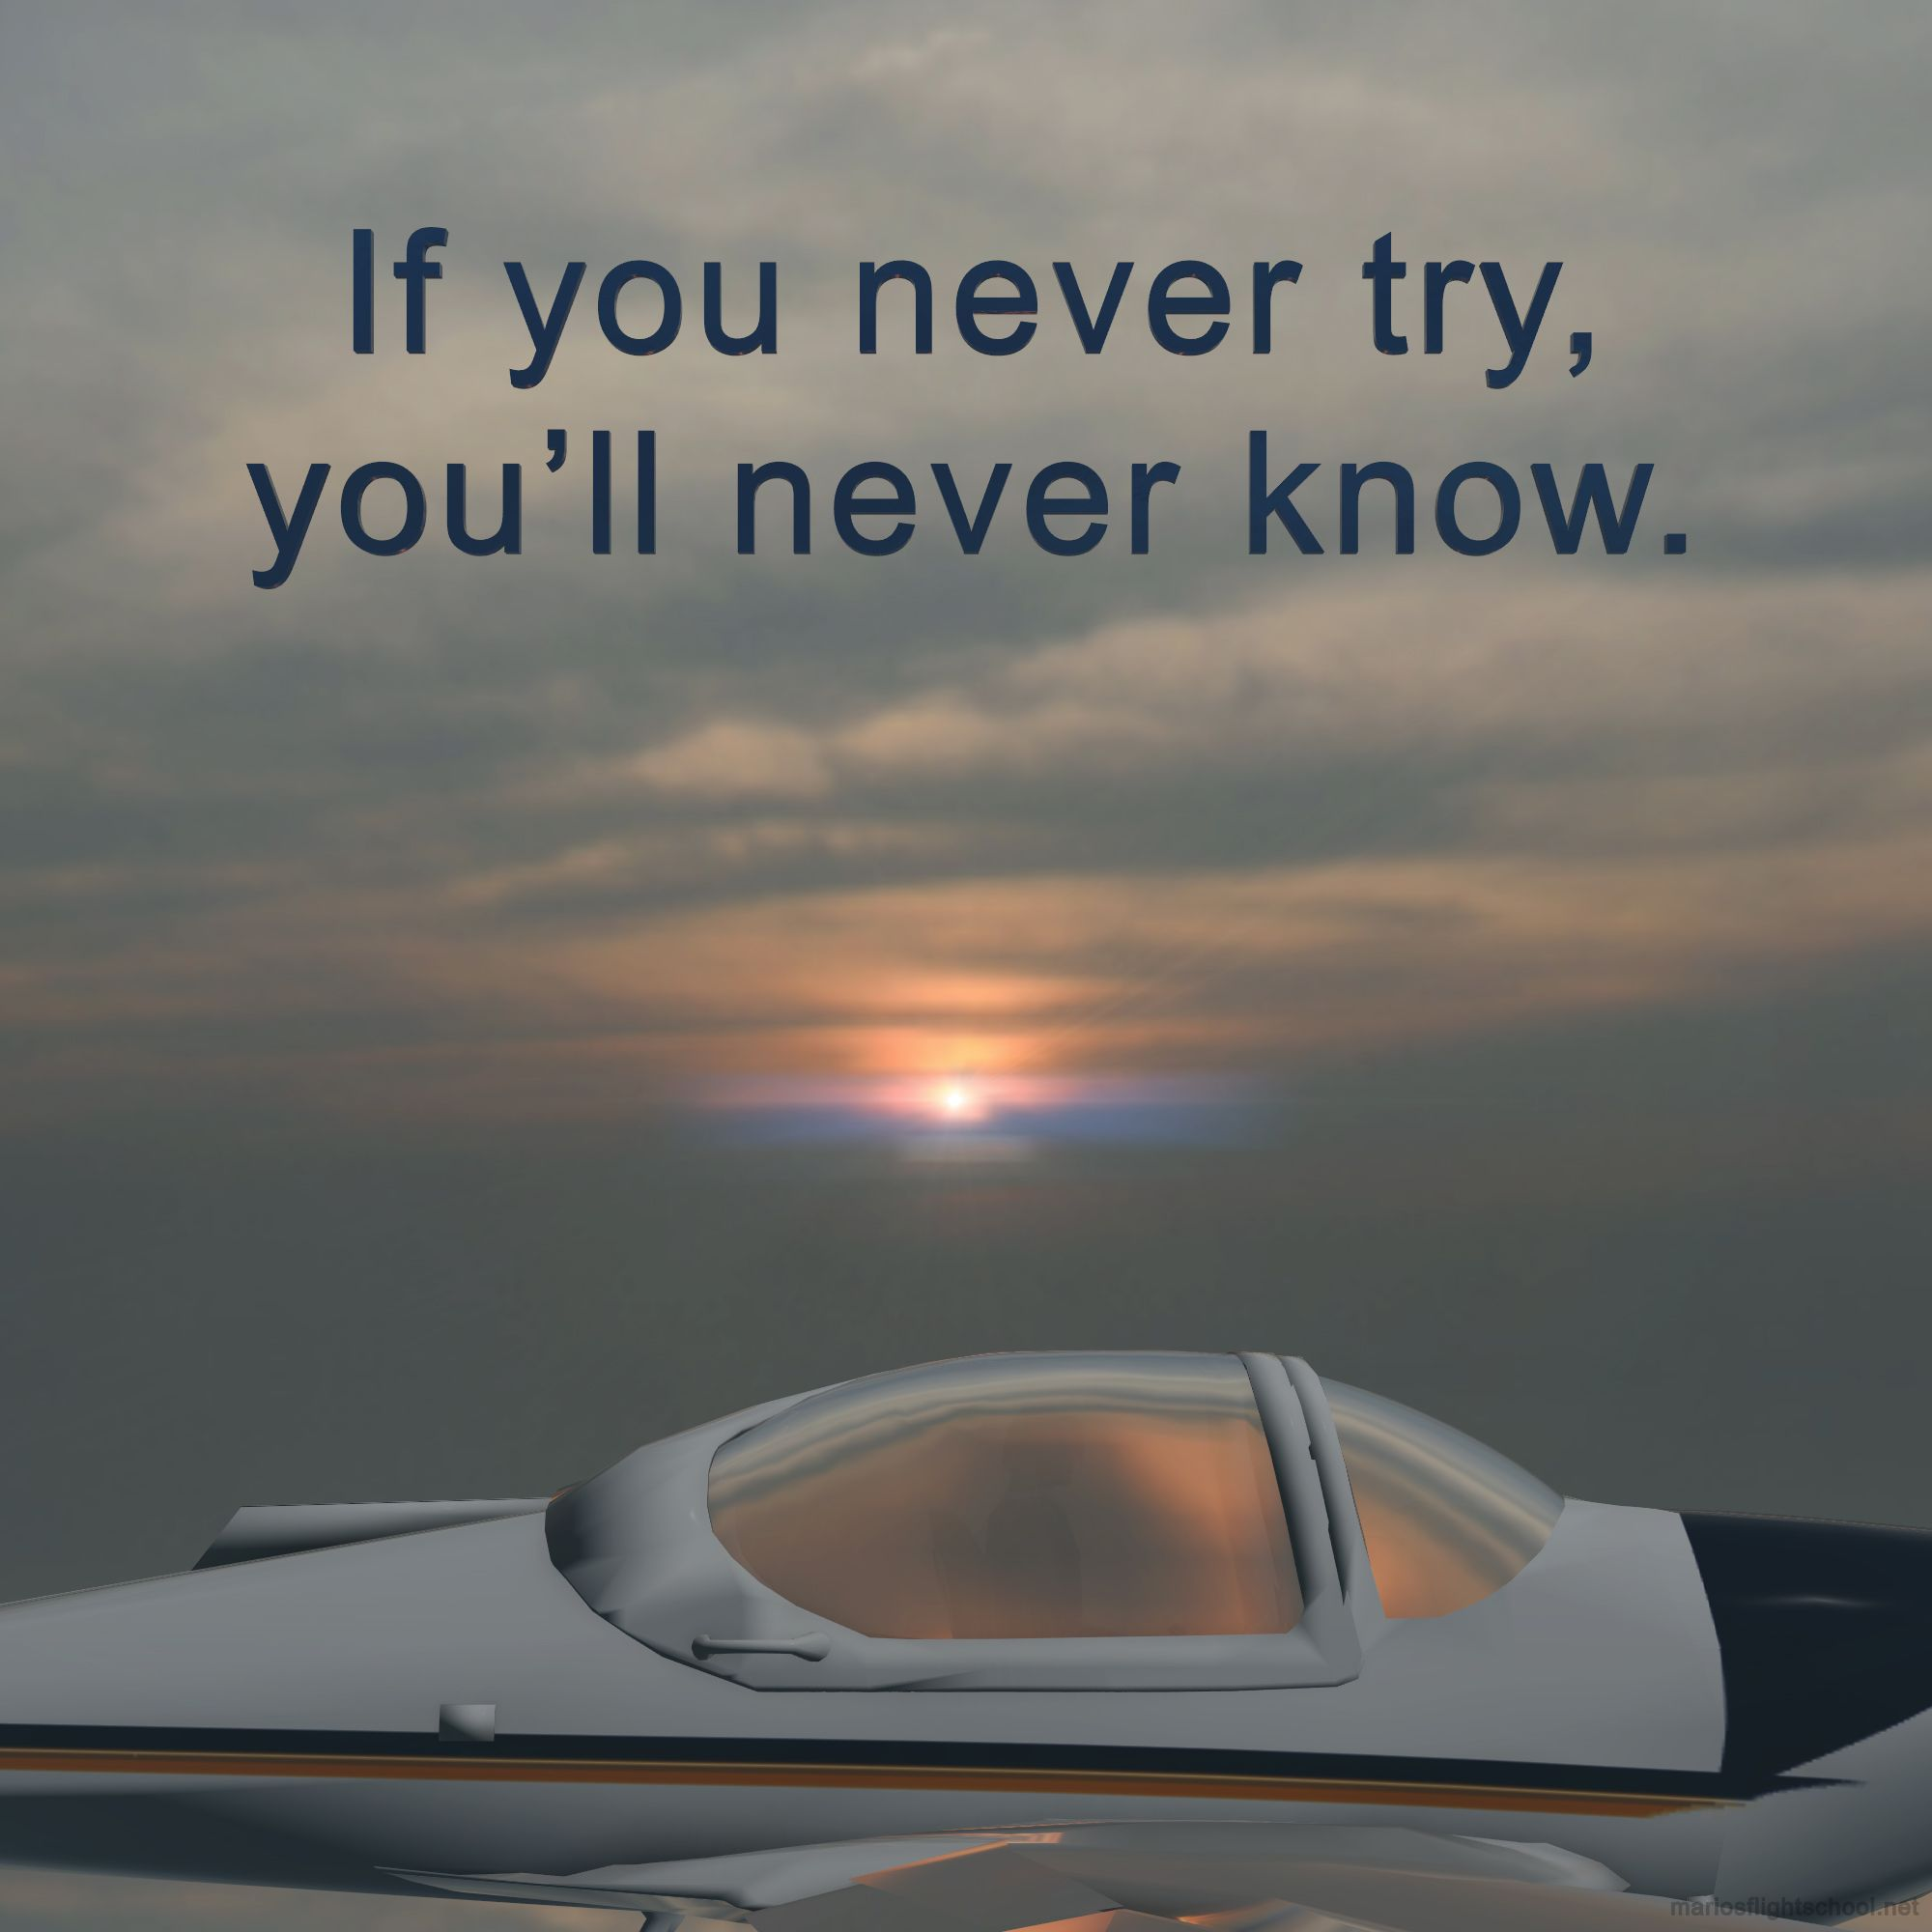 Airplane Quotes: #FlyingwiththeRichandFamous